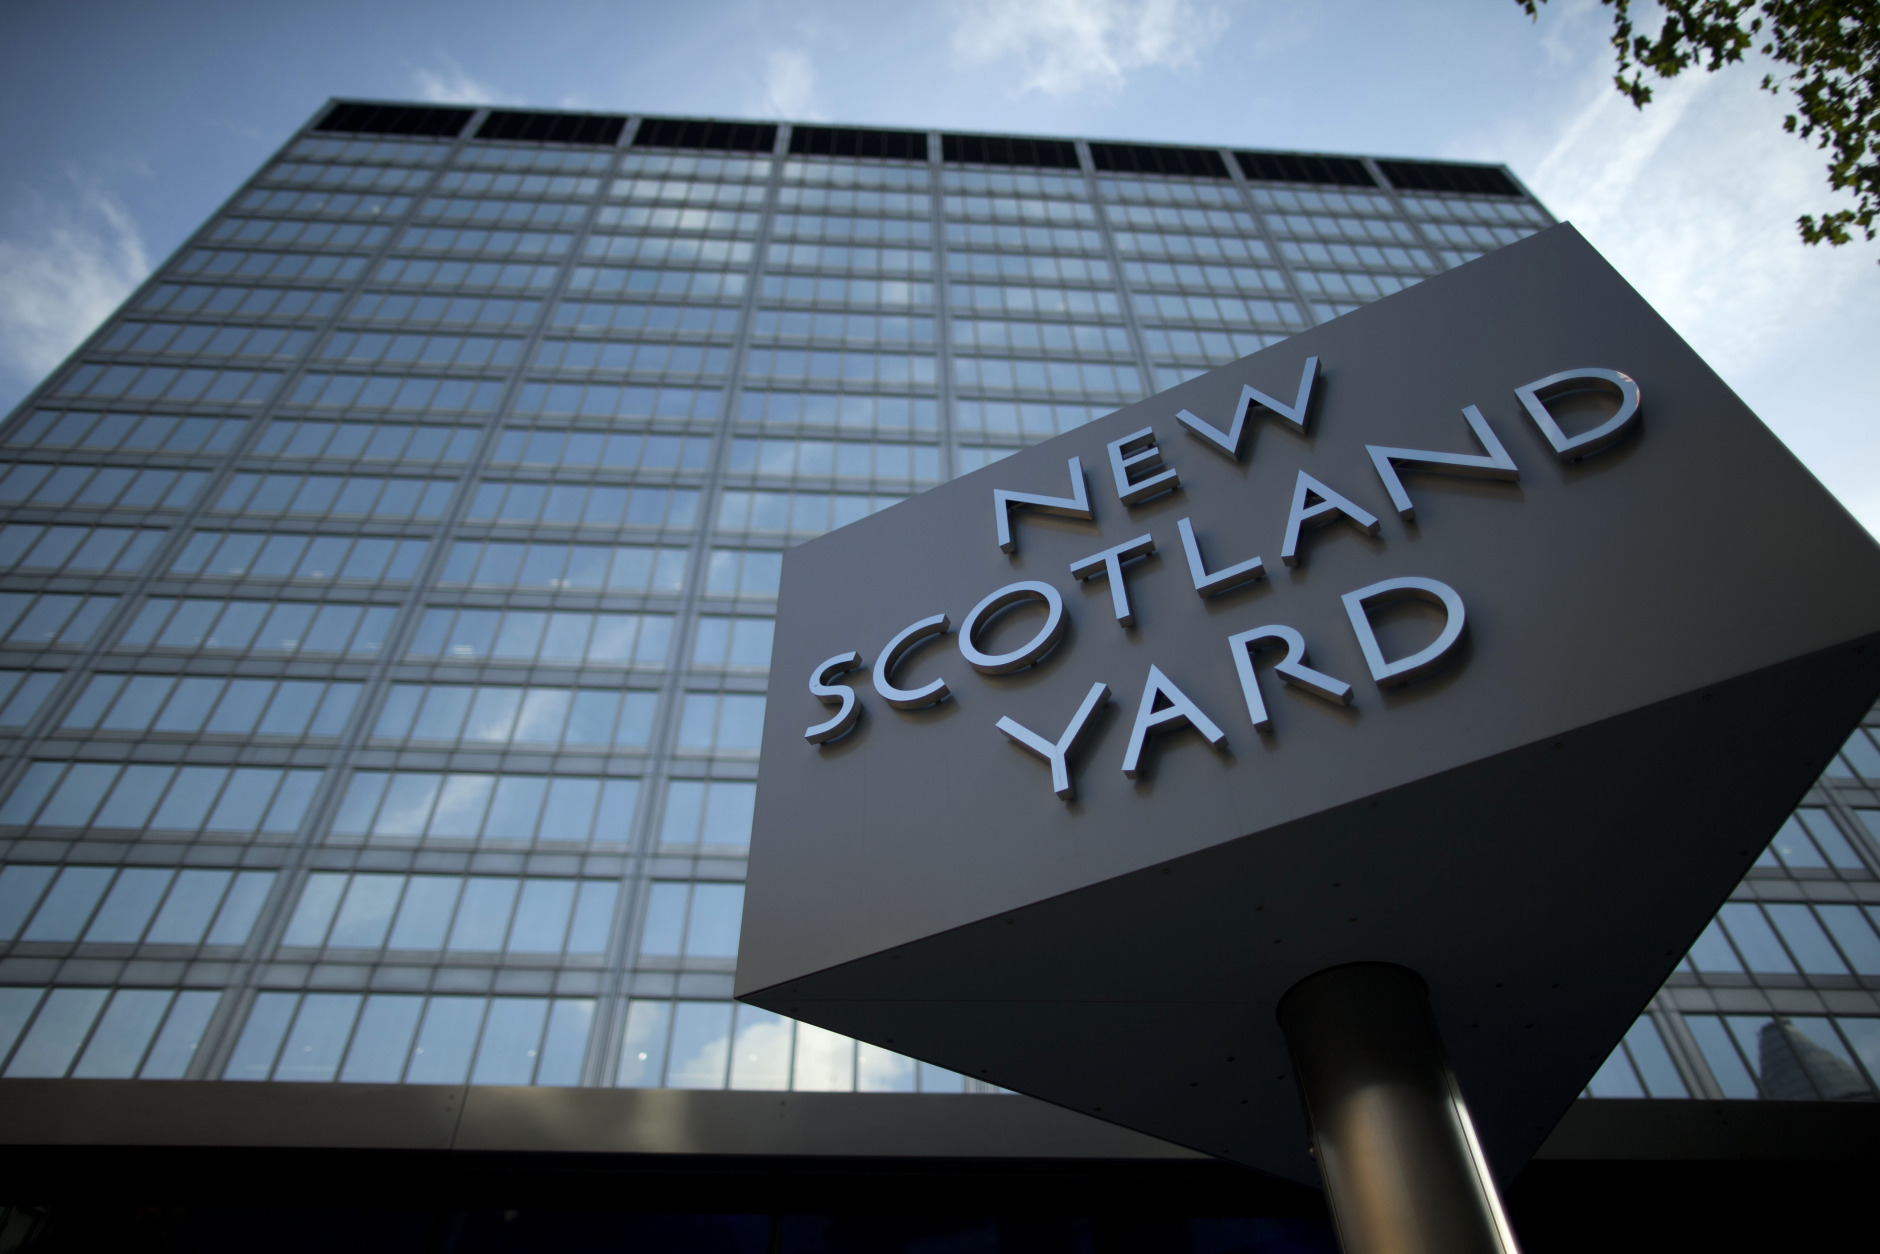 FILE - A Tuesday, Oct. 30, 2012 photo from files showing the sign outside New Scotland Yard, the headquarters building of London's Metropolitan Police force in central London. Scotland Yard, the world's most famous police headquarters, has been sold to Gulf investors who plan to turn it into luxury apartments. The London mayor's office said Tuesday that Abu Dhabi Financial Group had bought the site for 370 million pounds ($580 million), 120 million pounds over the asking price. (AP Photo/Matt Dunham, File)